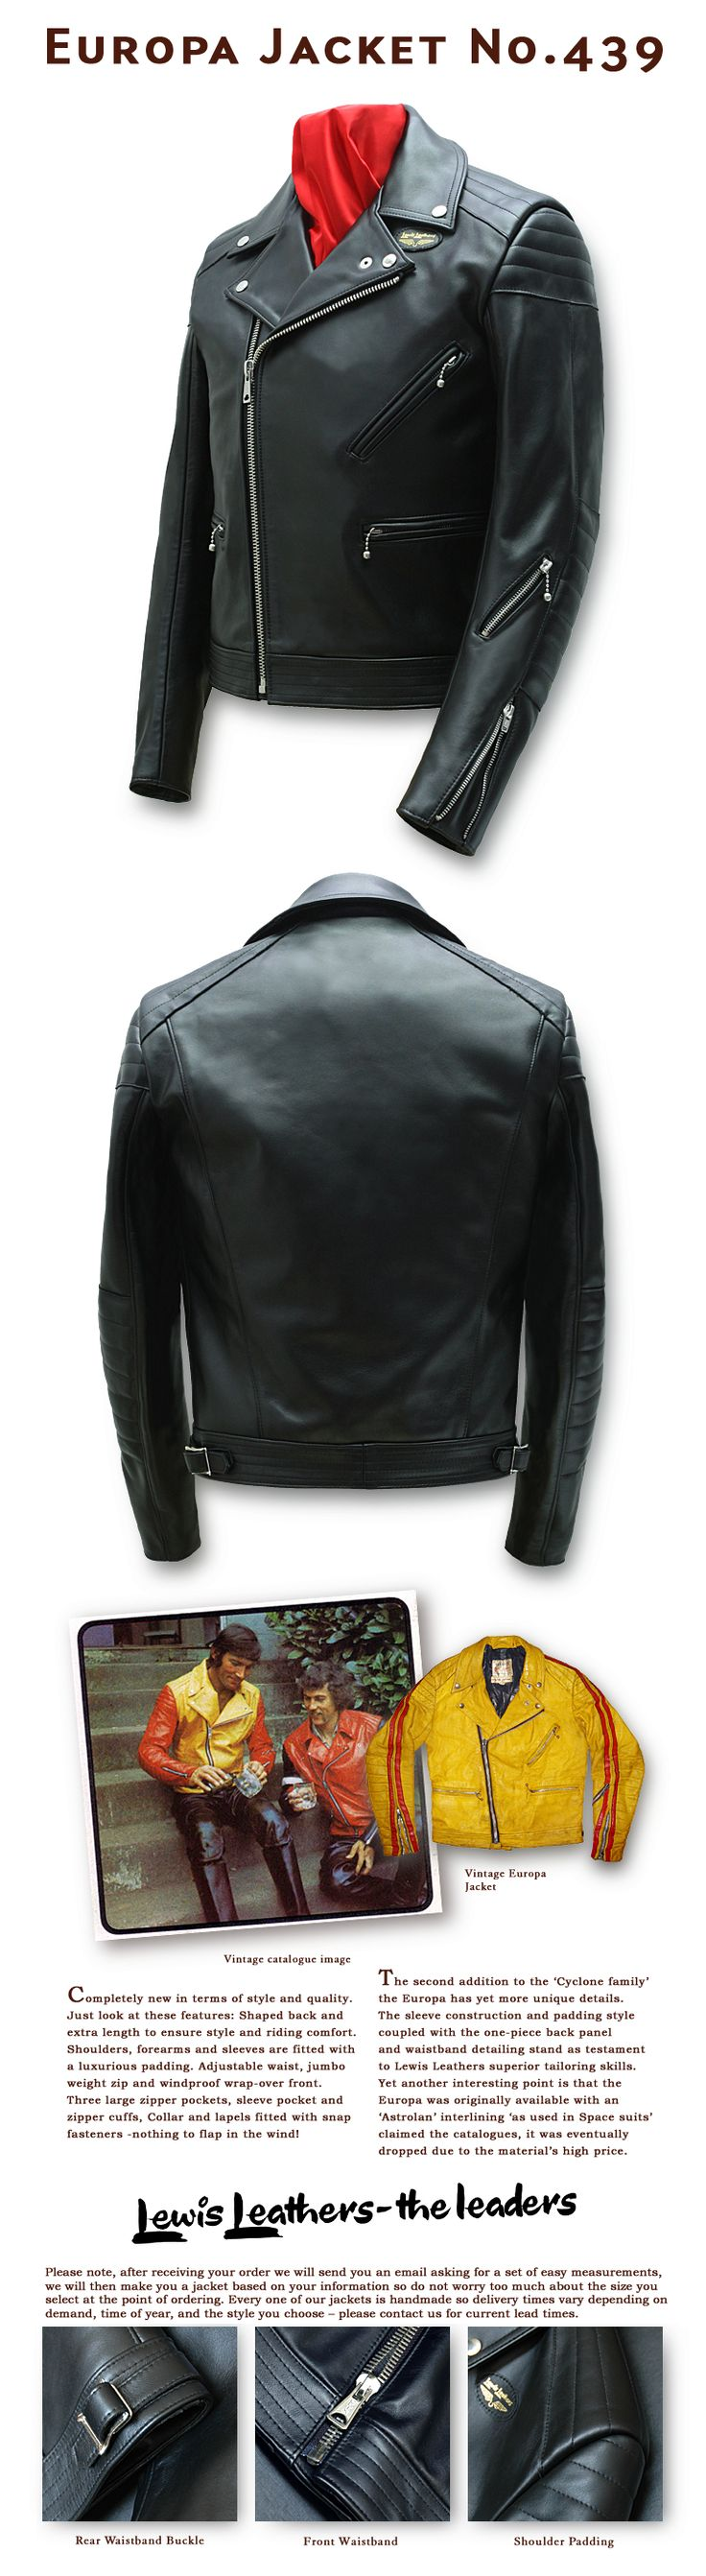 863de4079dba674cbb3a01d009d02164 motorcycle helmets bomber jackets 11 best clothes images on pinterest motorcycle jackets, rockers  at gsmx.co